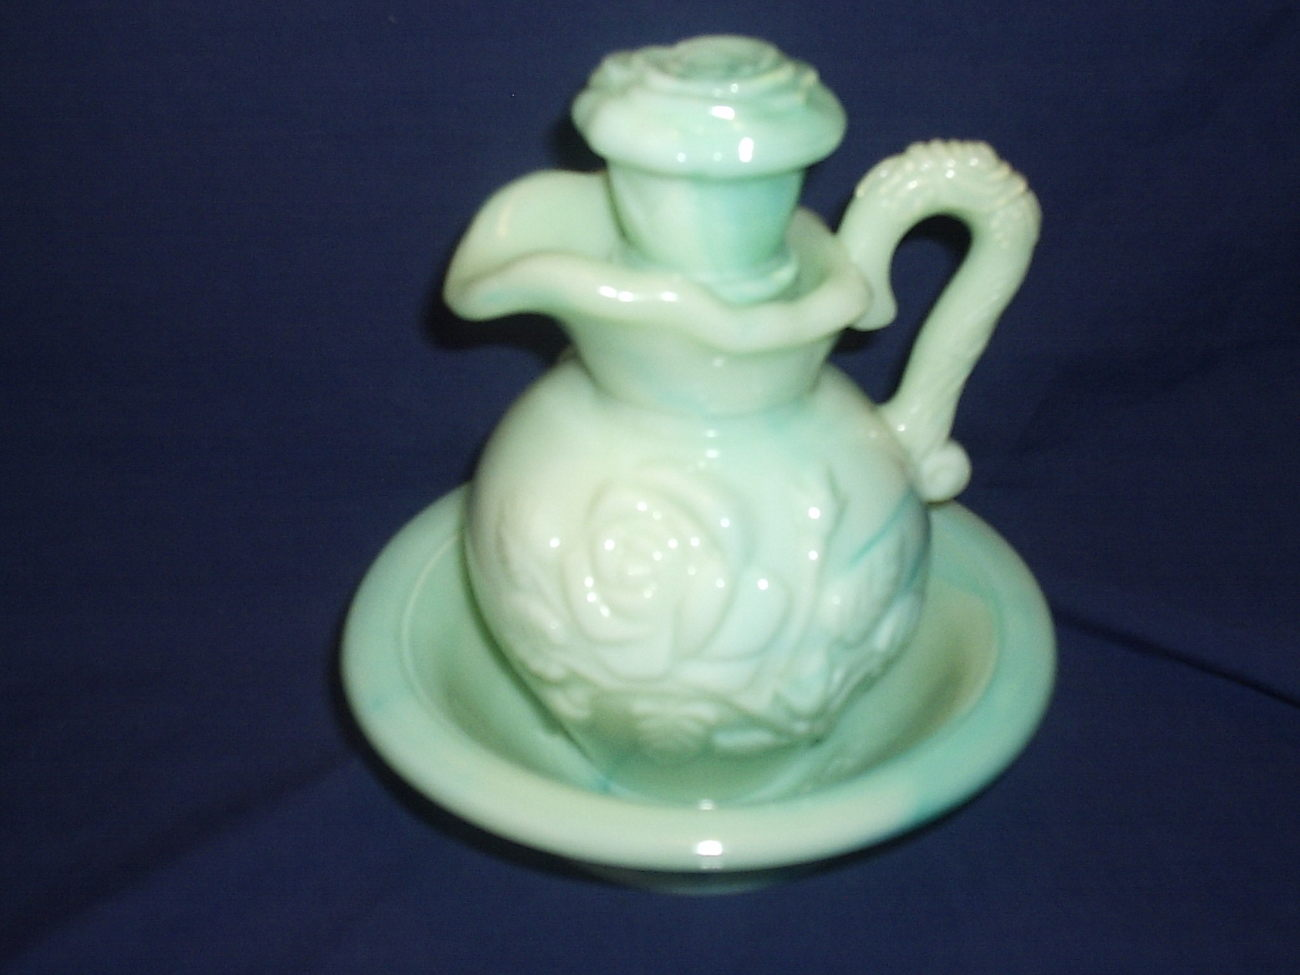 Avon Green Cruet & Soap Dish Aqua Marine and 50 similar items